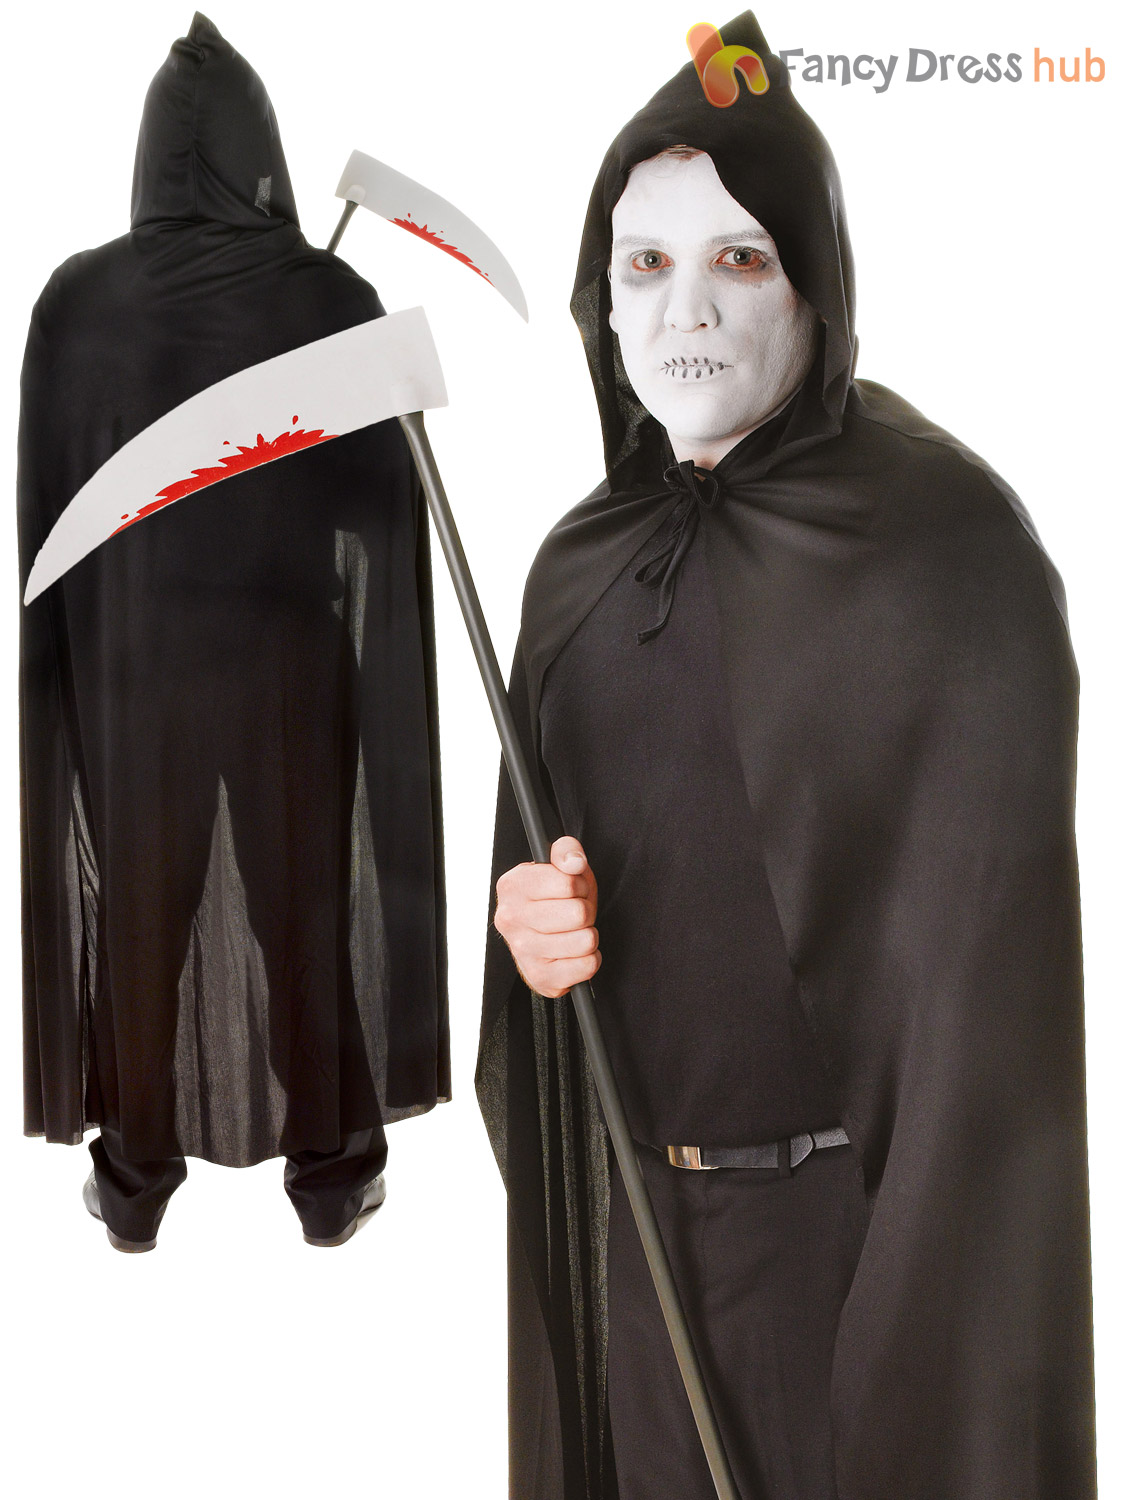 Adults-Hooded-Cape-Black-Red-Halloween-Red-Riding-Hood-Fancy-Dress-Accessory